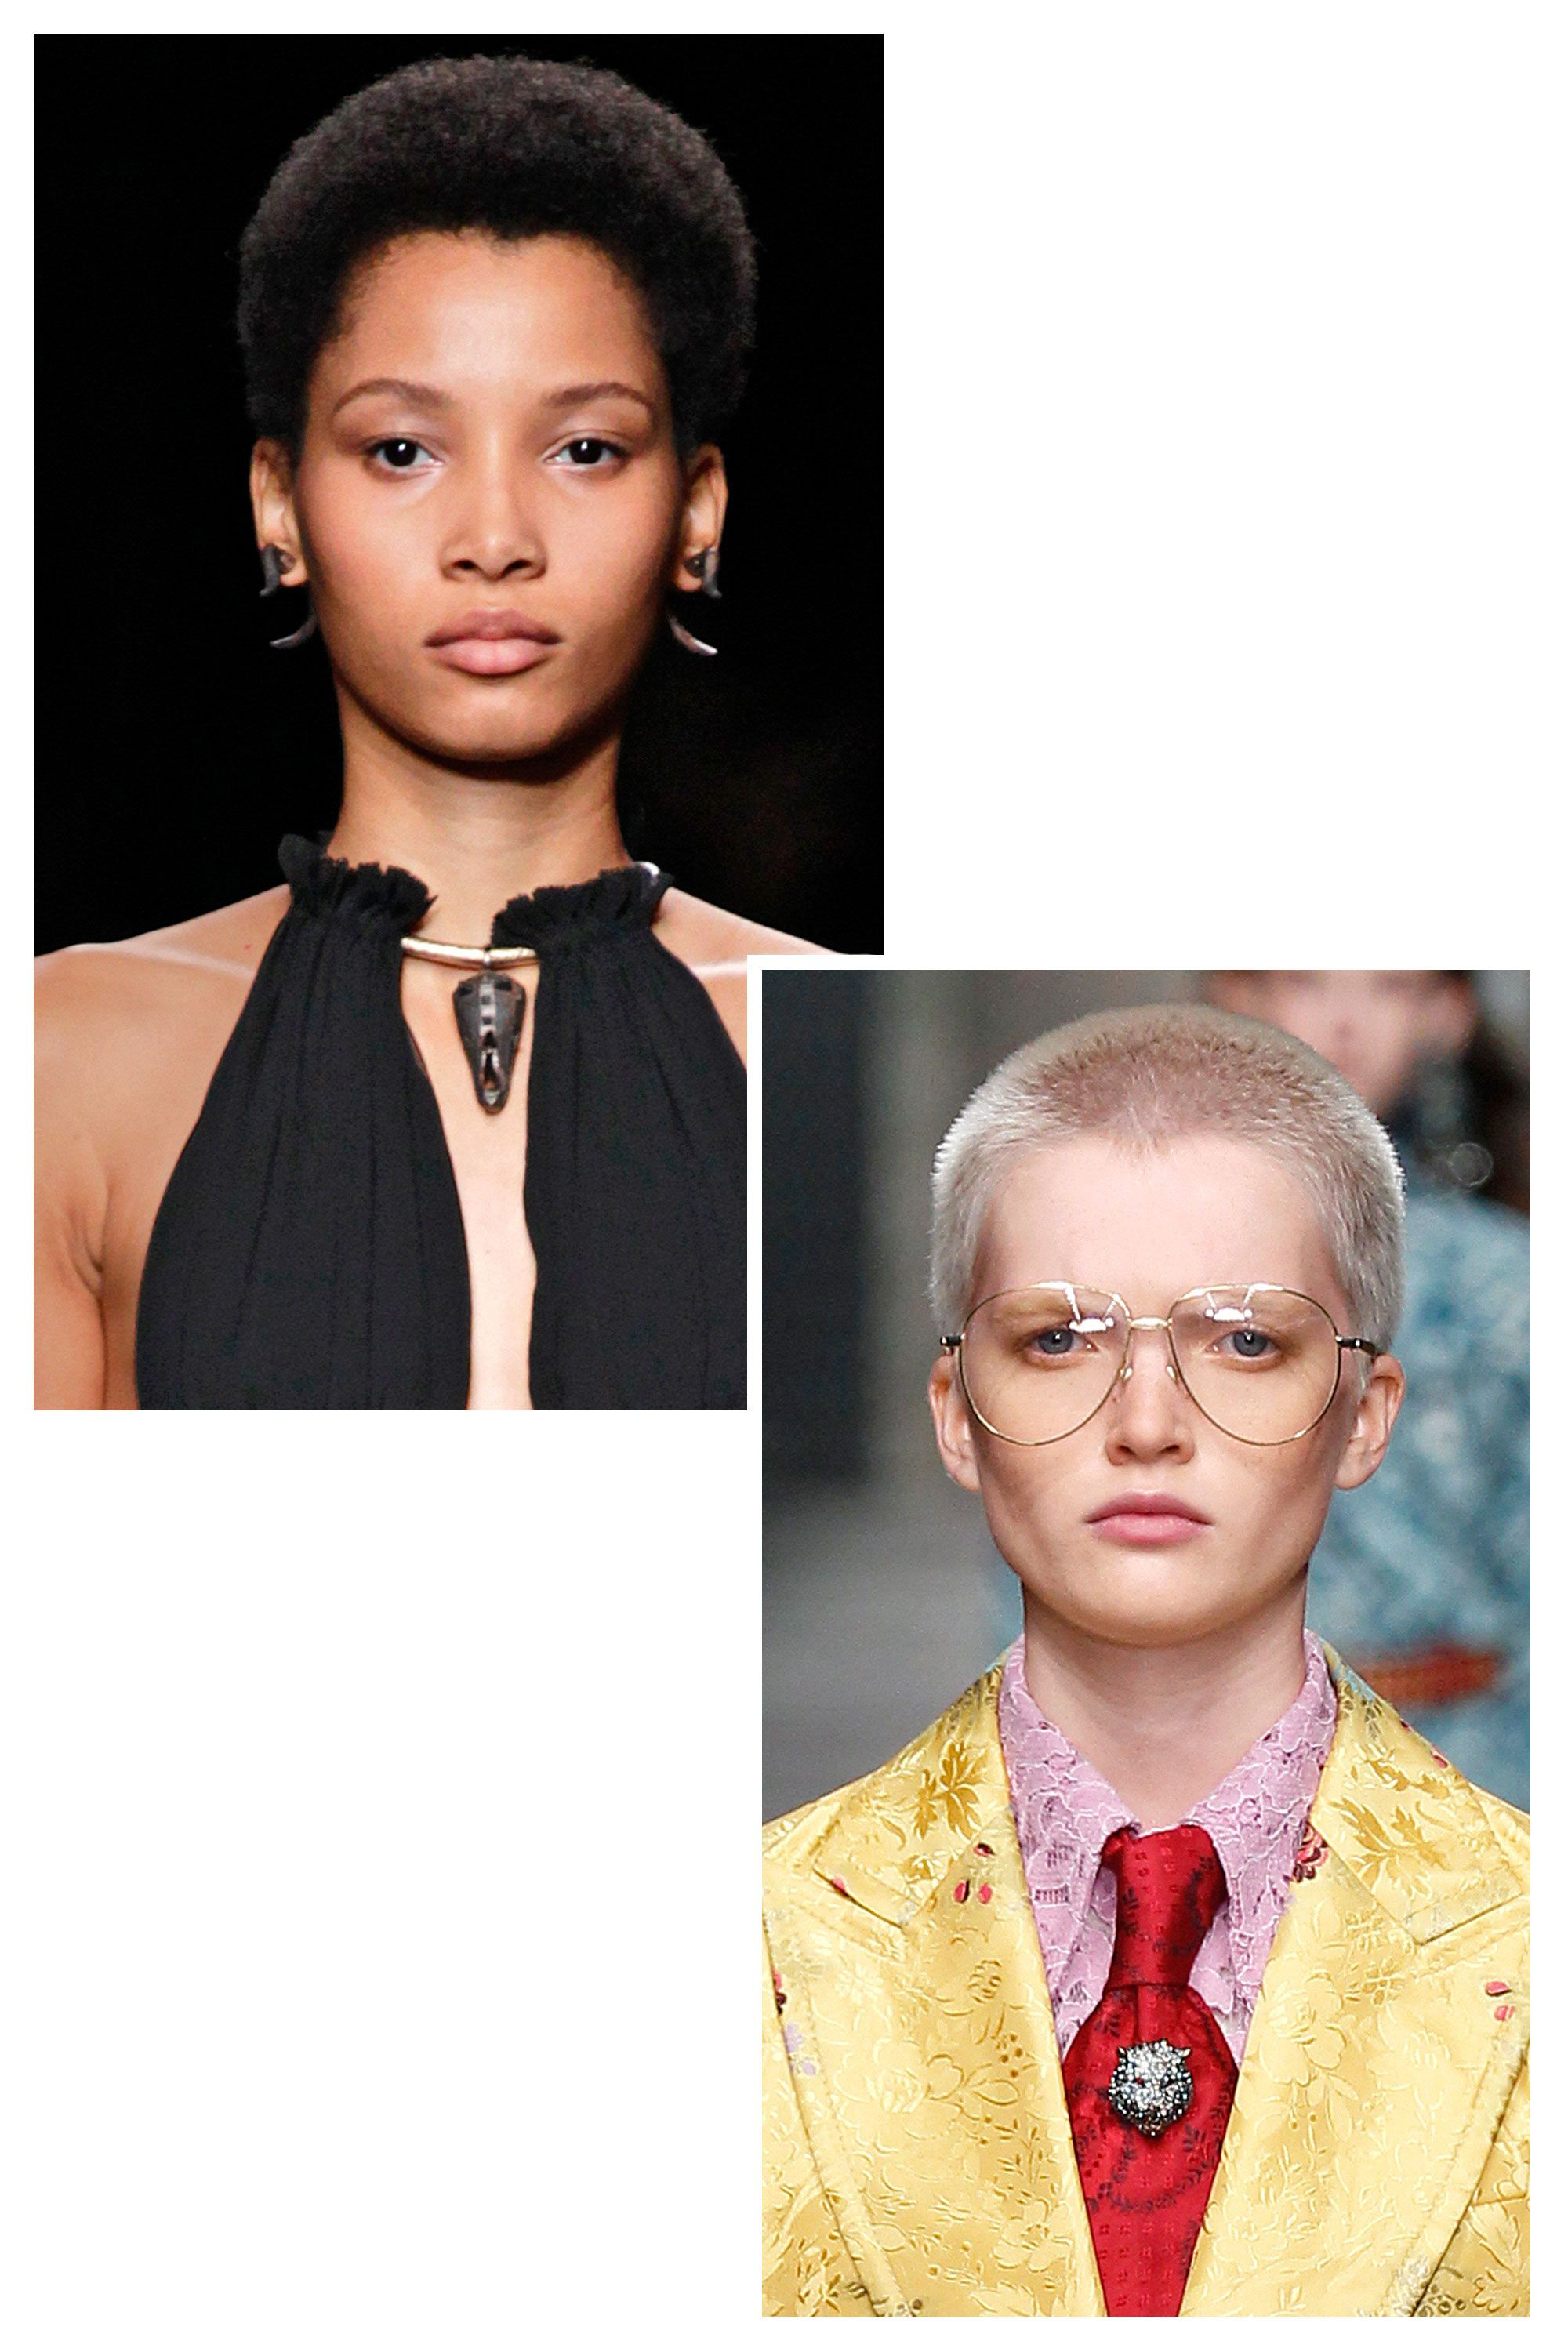 <p>The season's big breakout models both might have short hair, but their résumés are getting longer by the minute. Dominican-born Lineisy Montero graced the Spring 2016 catwalks of Proenza Schouler and Chanel, and has already snagged a Prada campaign. Meanwhile, Ruth Bell's delicate features and fresh buzz cut caught the eye of casting agents for Gucci, Max Mara, and Versace.</p><p><em>Lineisy Montero at Valentino&#x3B; Ruth Bell at Gucci</em></p>